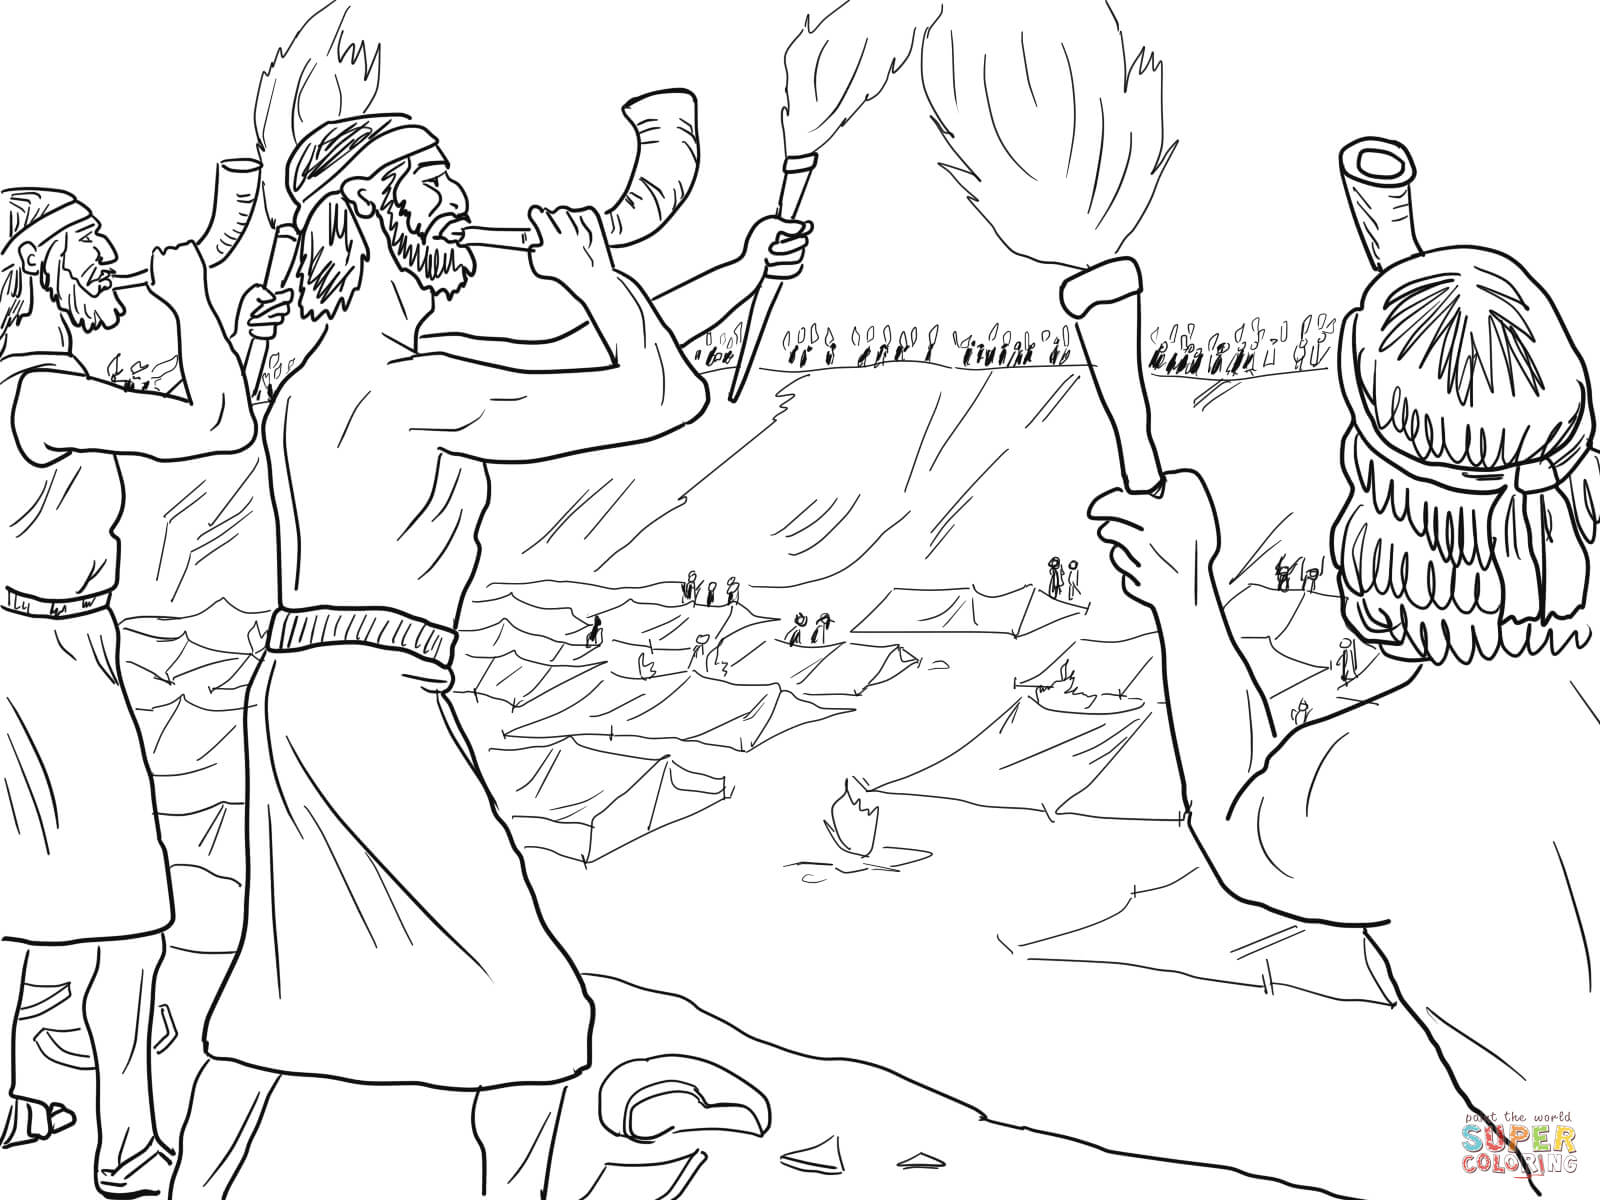 Gideon Sol Rs With Trumpets And Torches Coloring Page